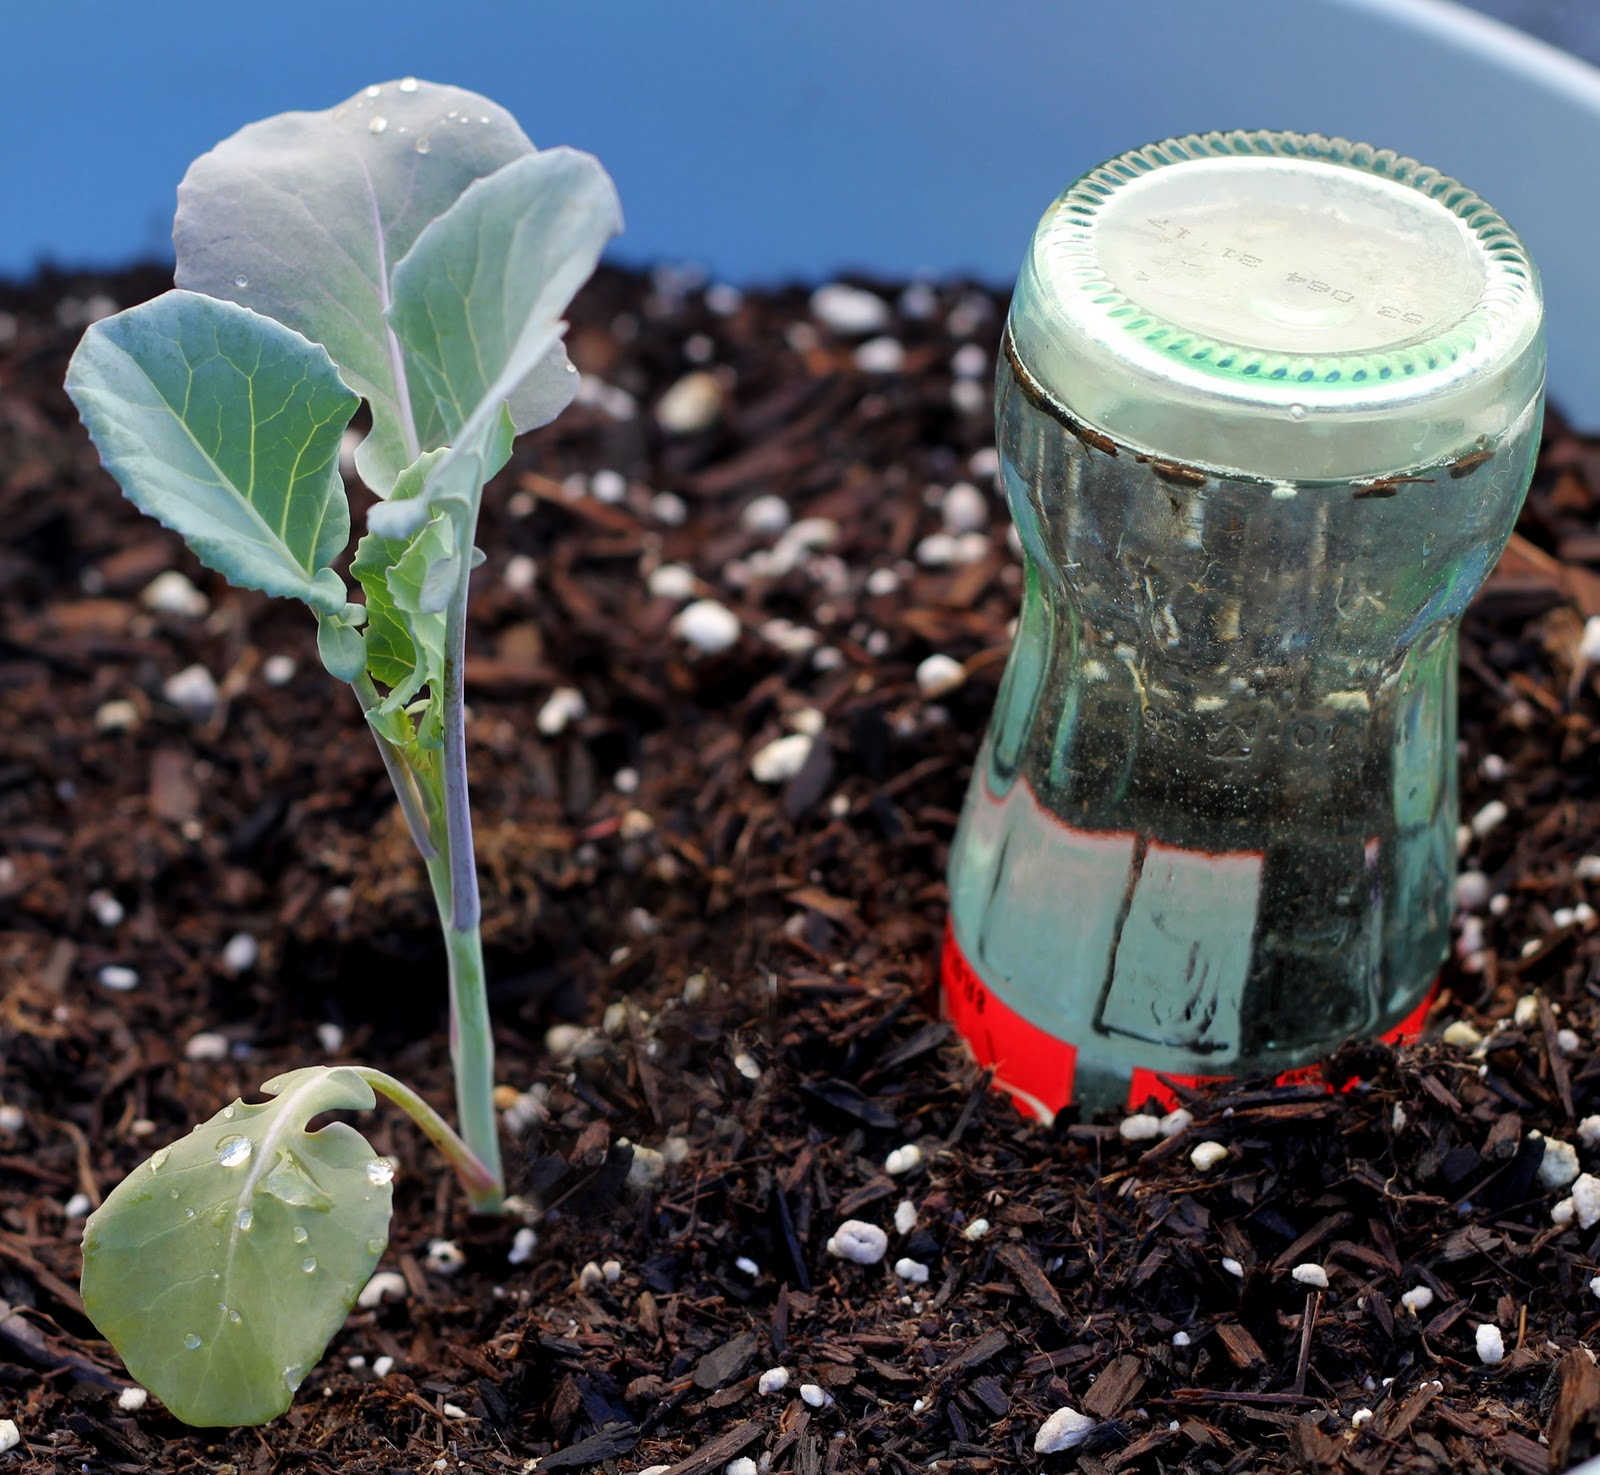 Pack of 2 Fill And Push Into The Soil To Water Plants Aqua Globes